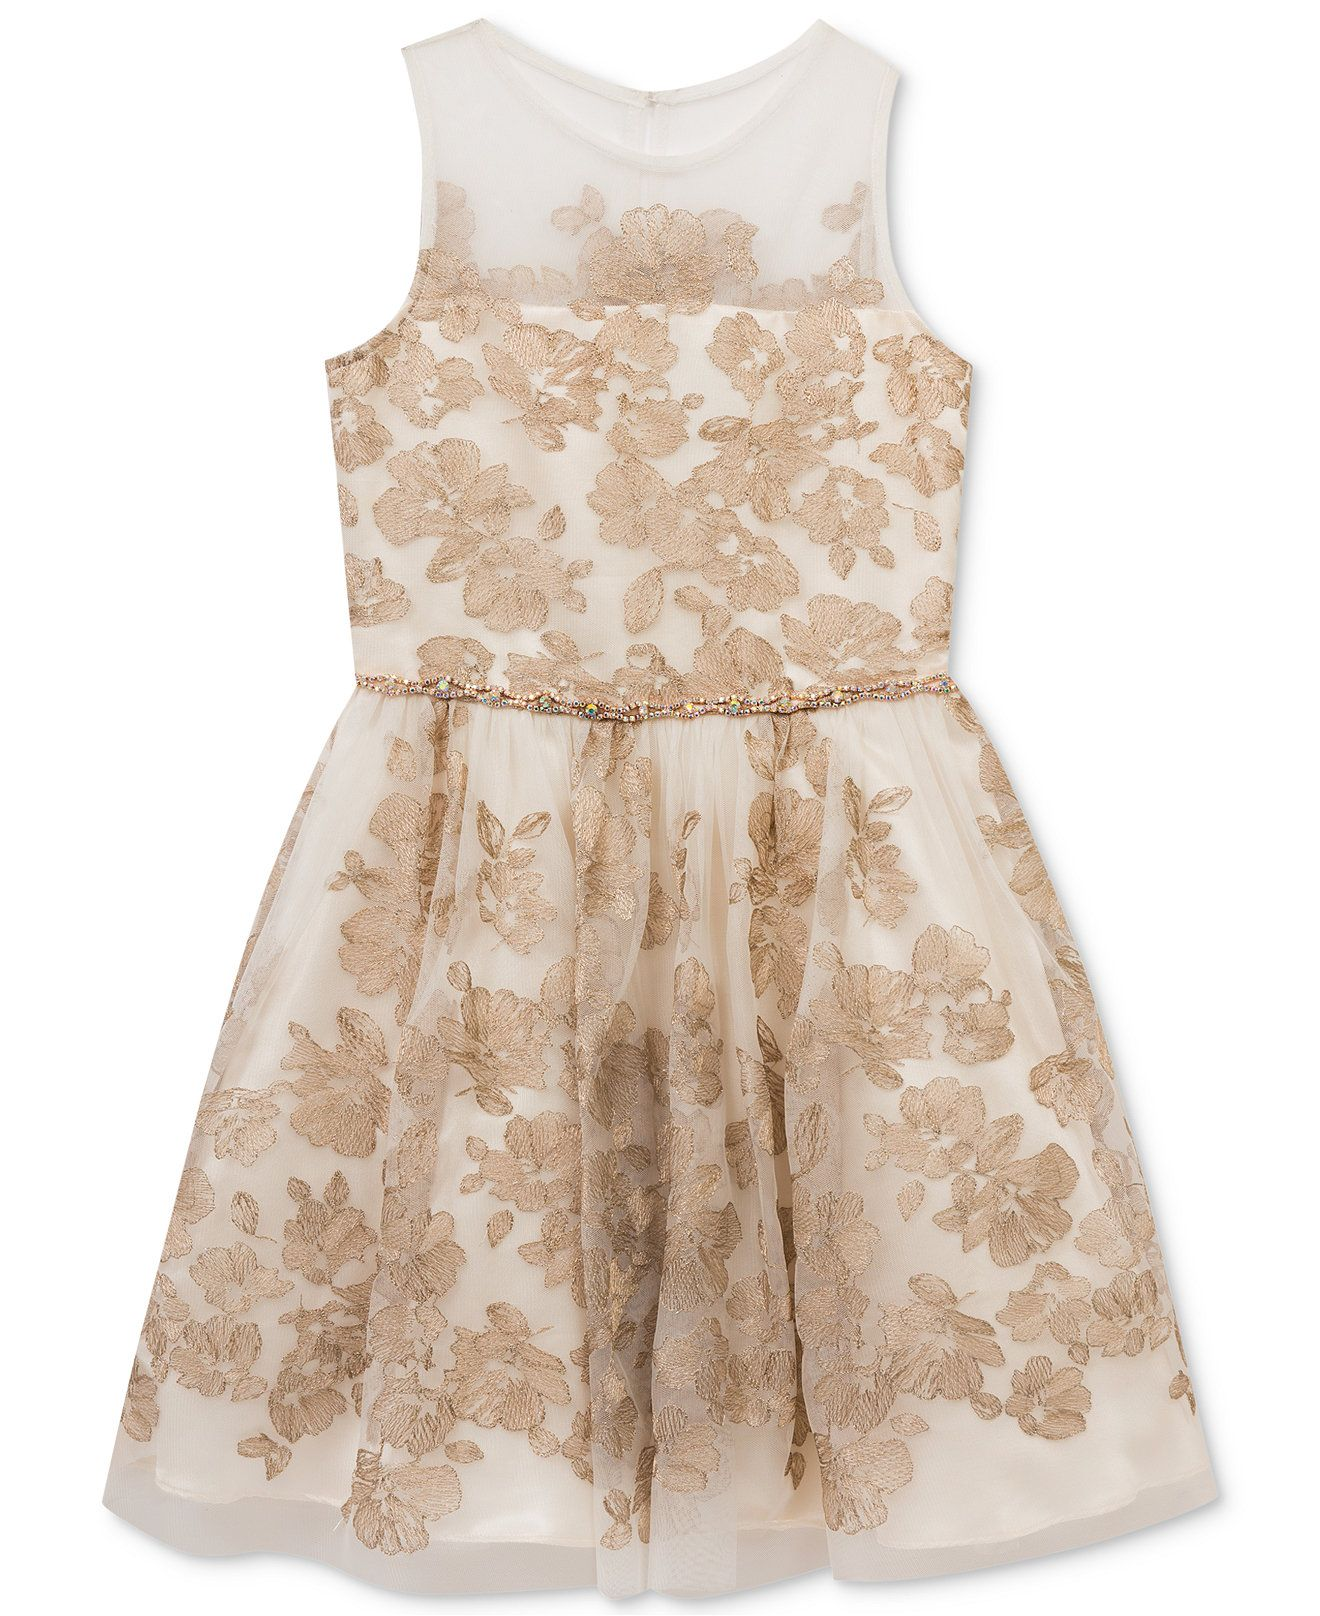 b79acce87600a Rare Editions Embroidered Illusion Party Dress, Big Girls (7-16) - Dresses  - Kids & Baby - Macy's #Easter #Gifts #Dress #Coupons